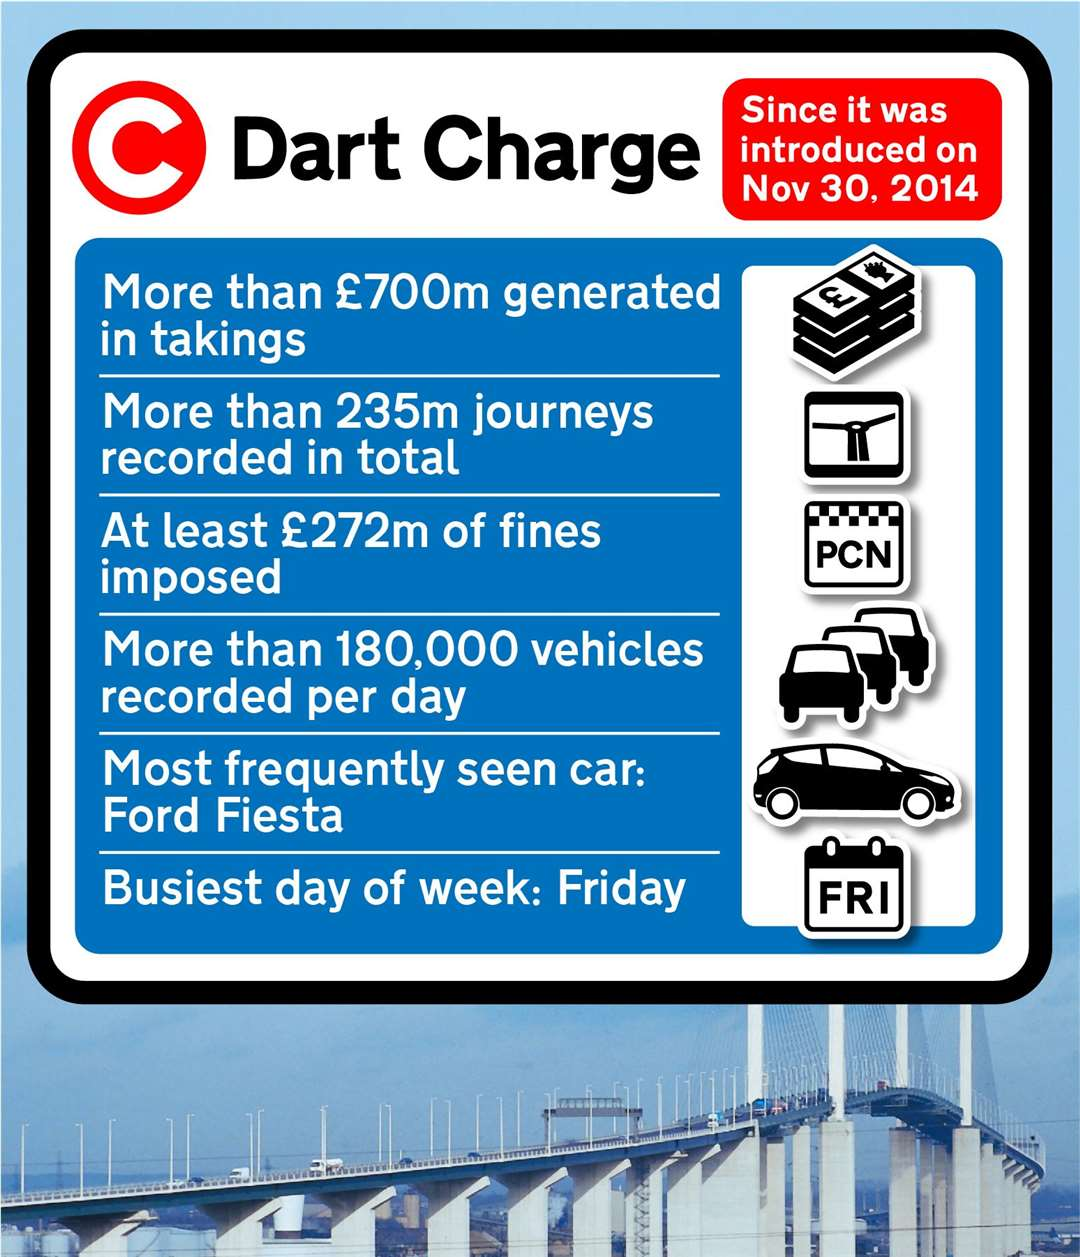 Dart Charge facts and figures